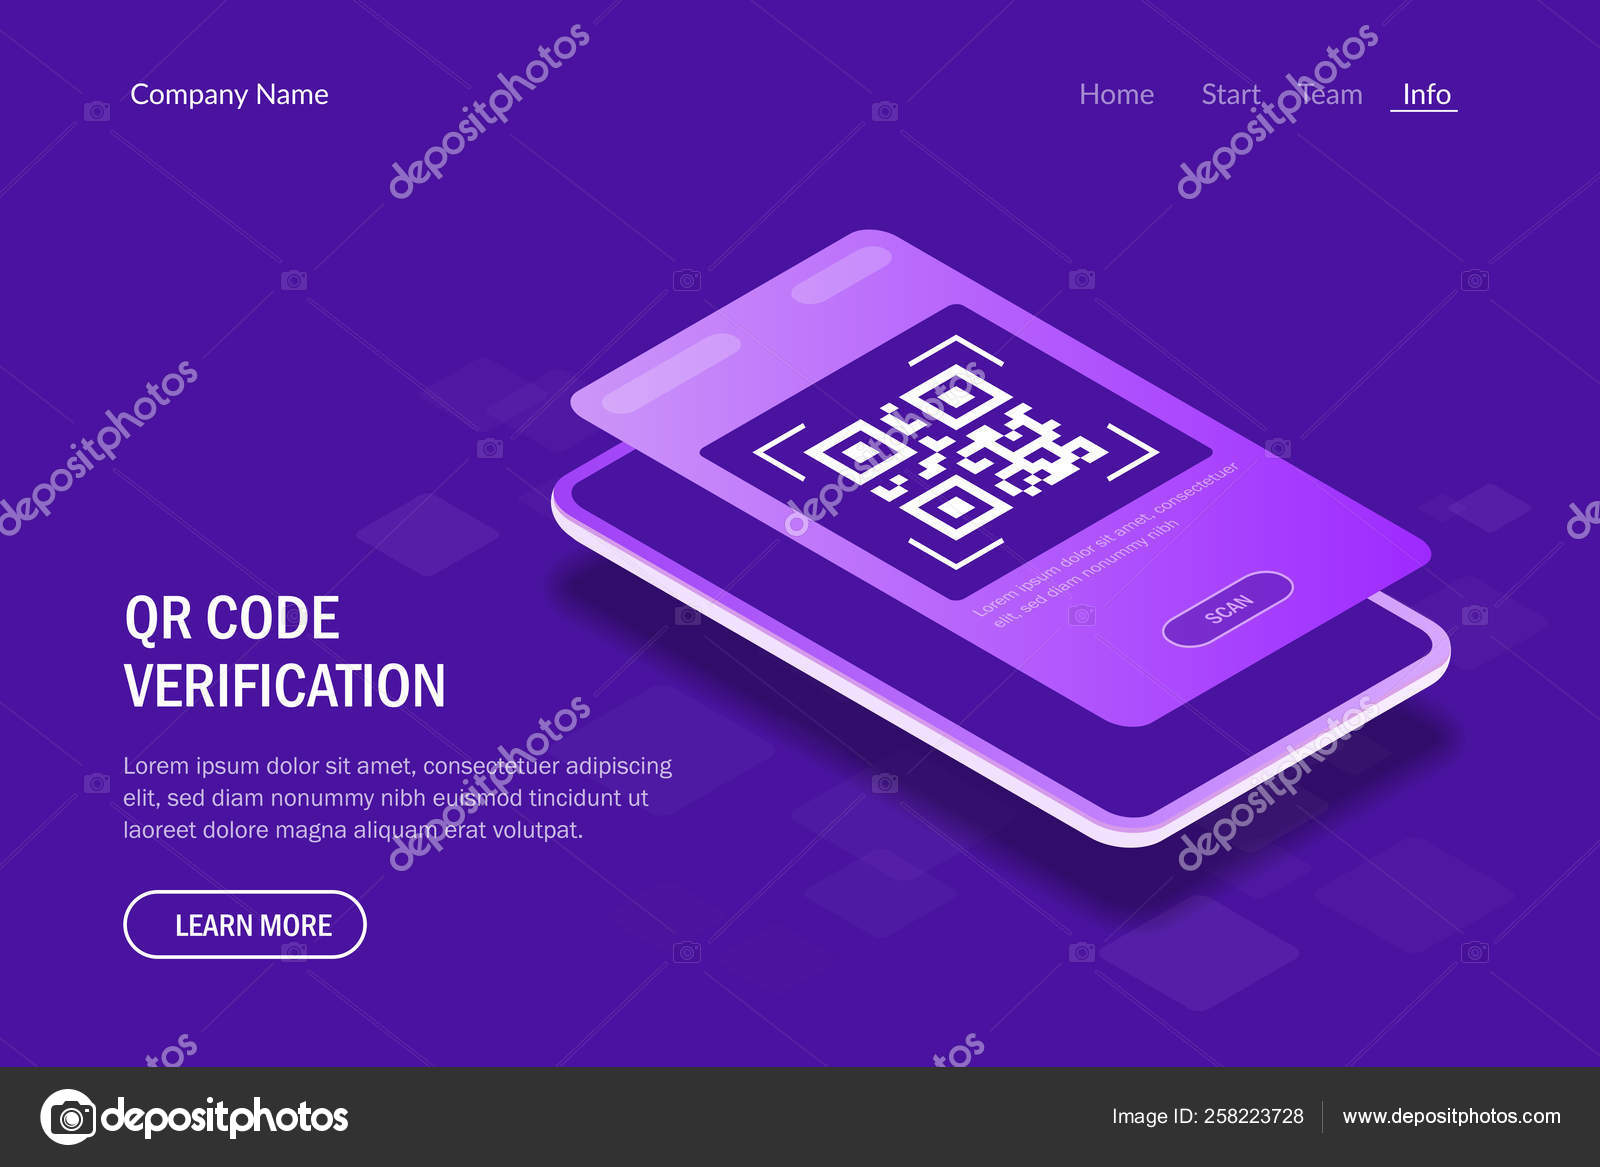 Qr Code Verification Concept  Mobile phone with a scanner